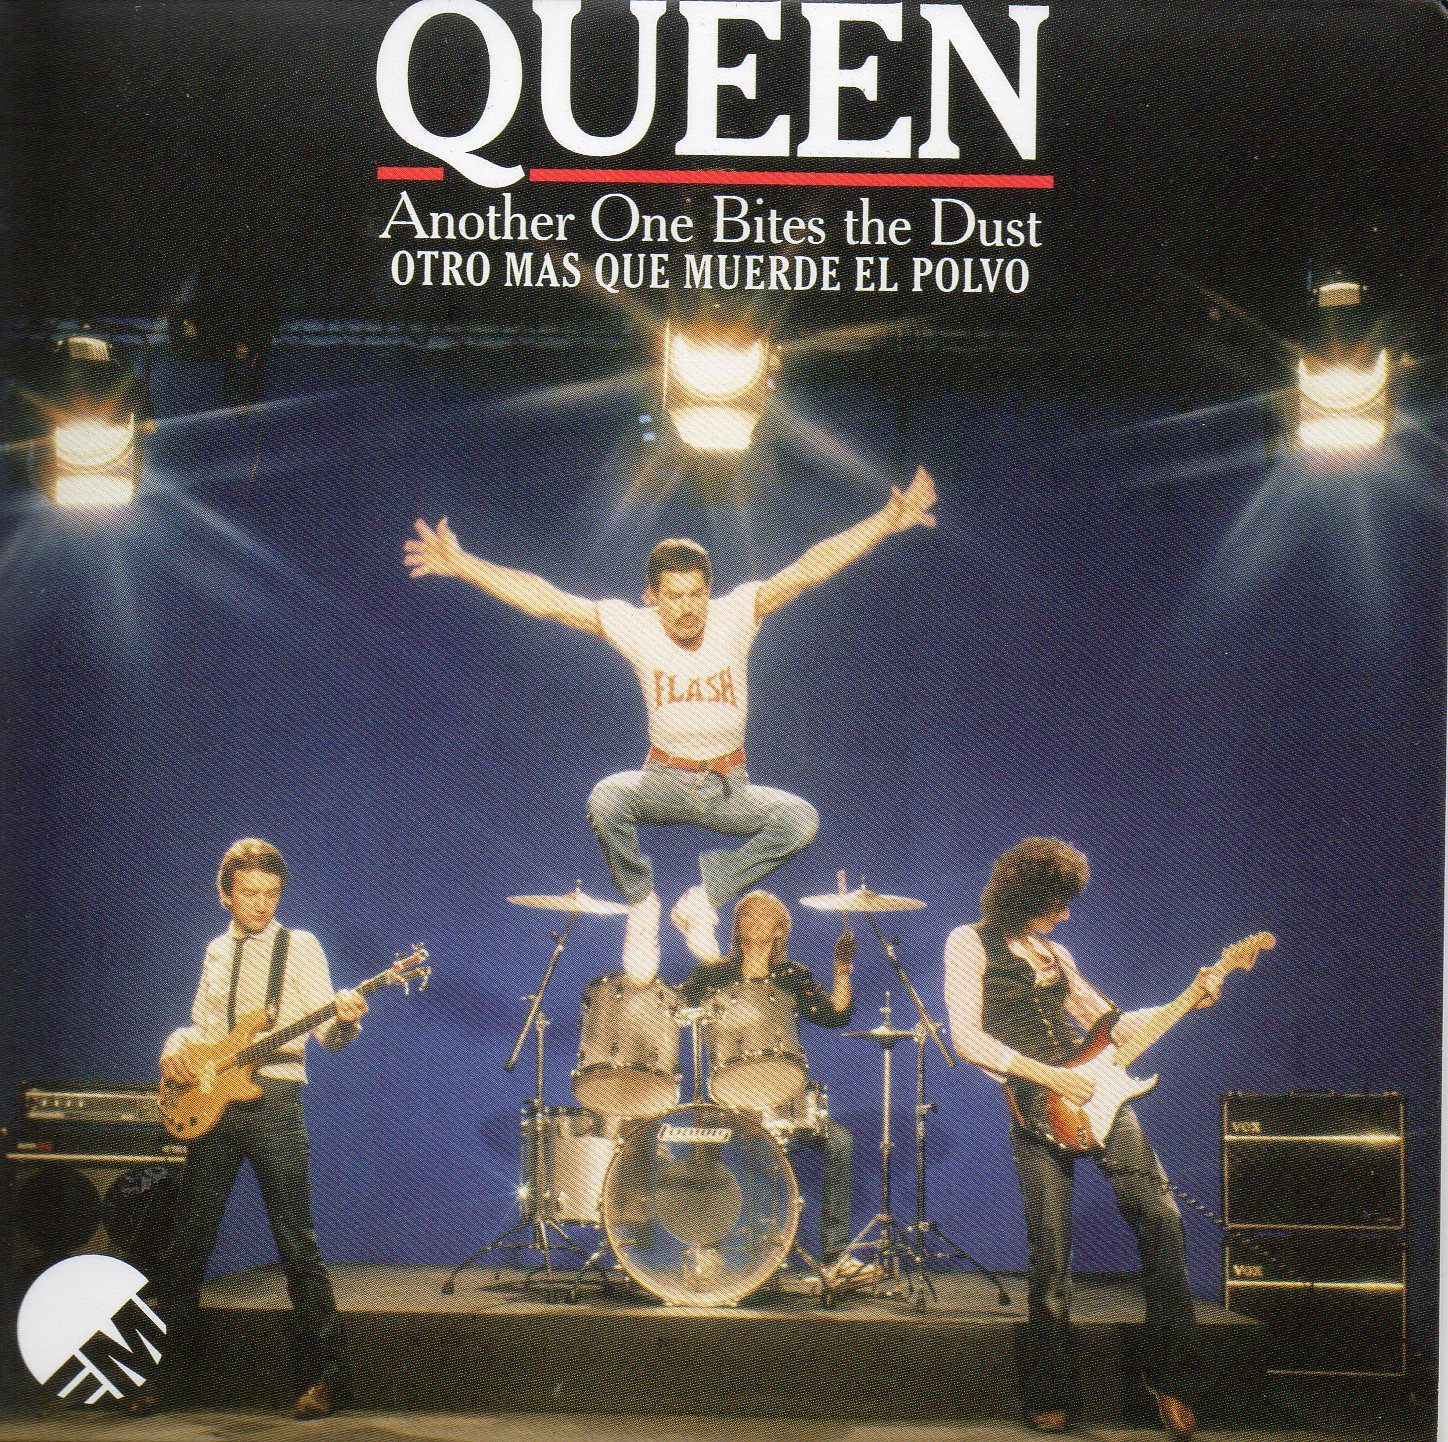 QUEEN - Another One Bites The Dust + Mexico + 2-track Card Sleeve - Reedition Du 45t Original - - Reissue Of